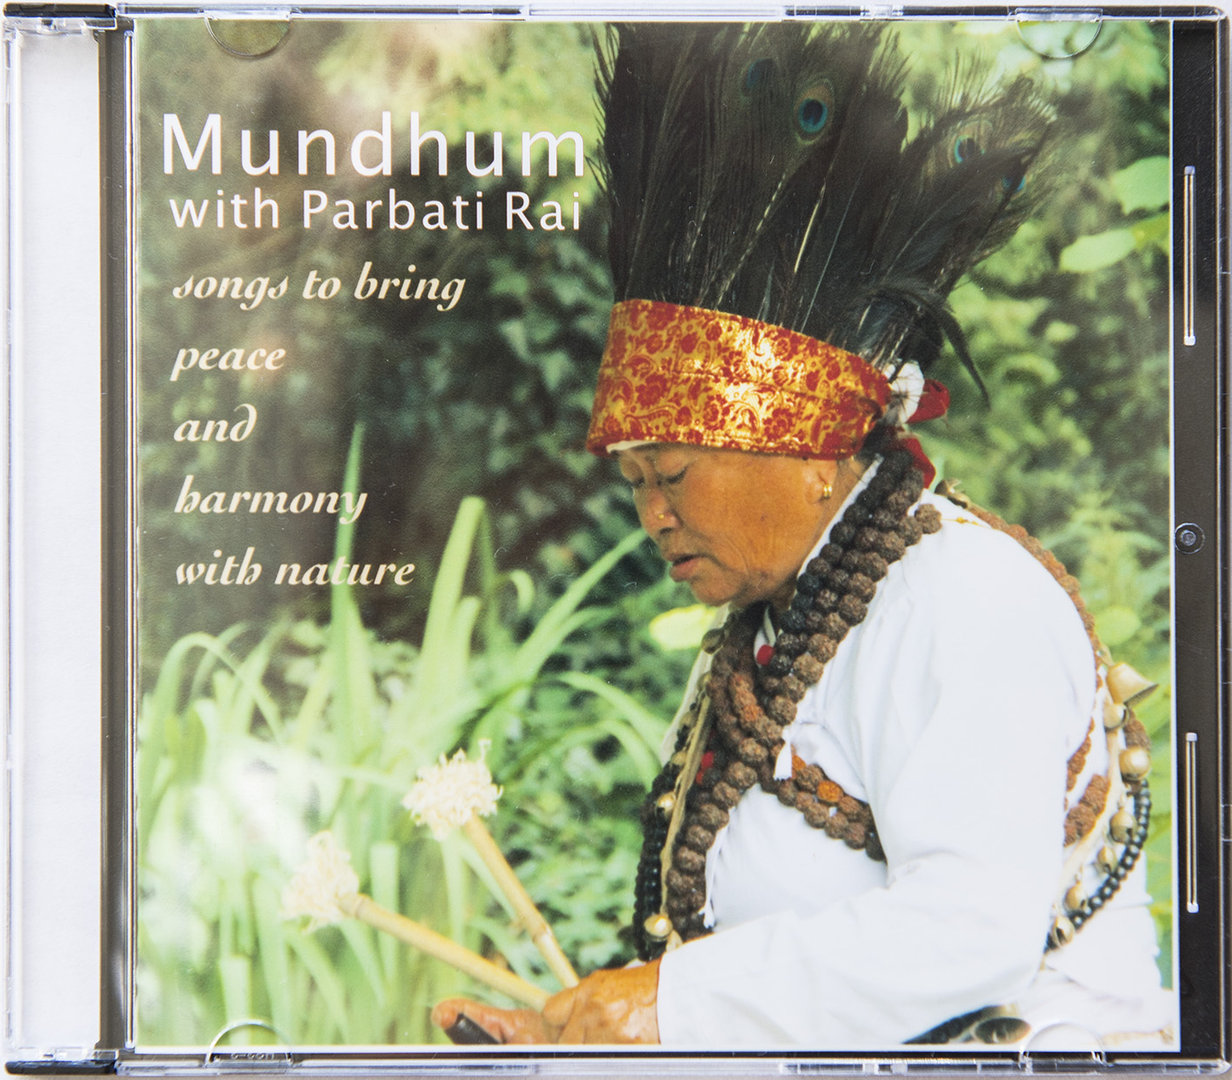 CD Mundhum with Parbati Rai